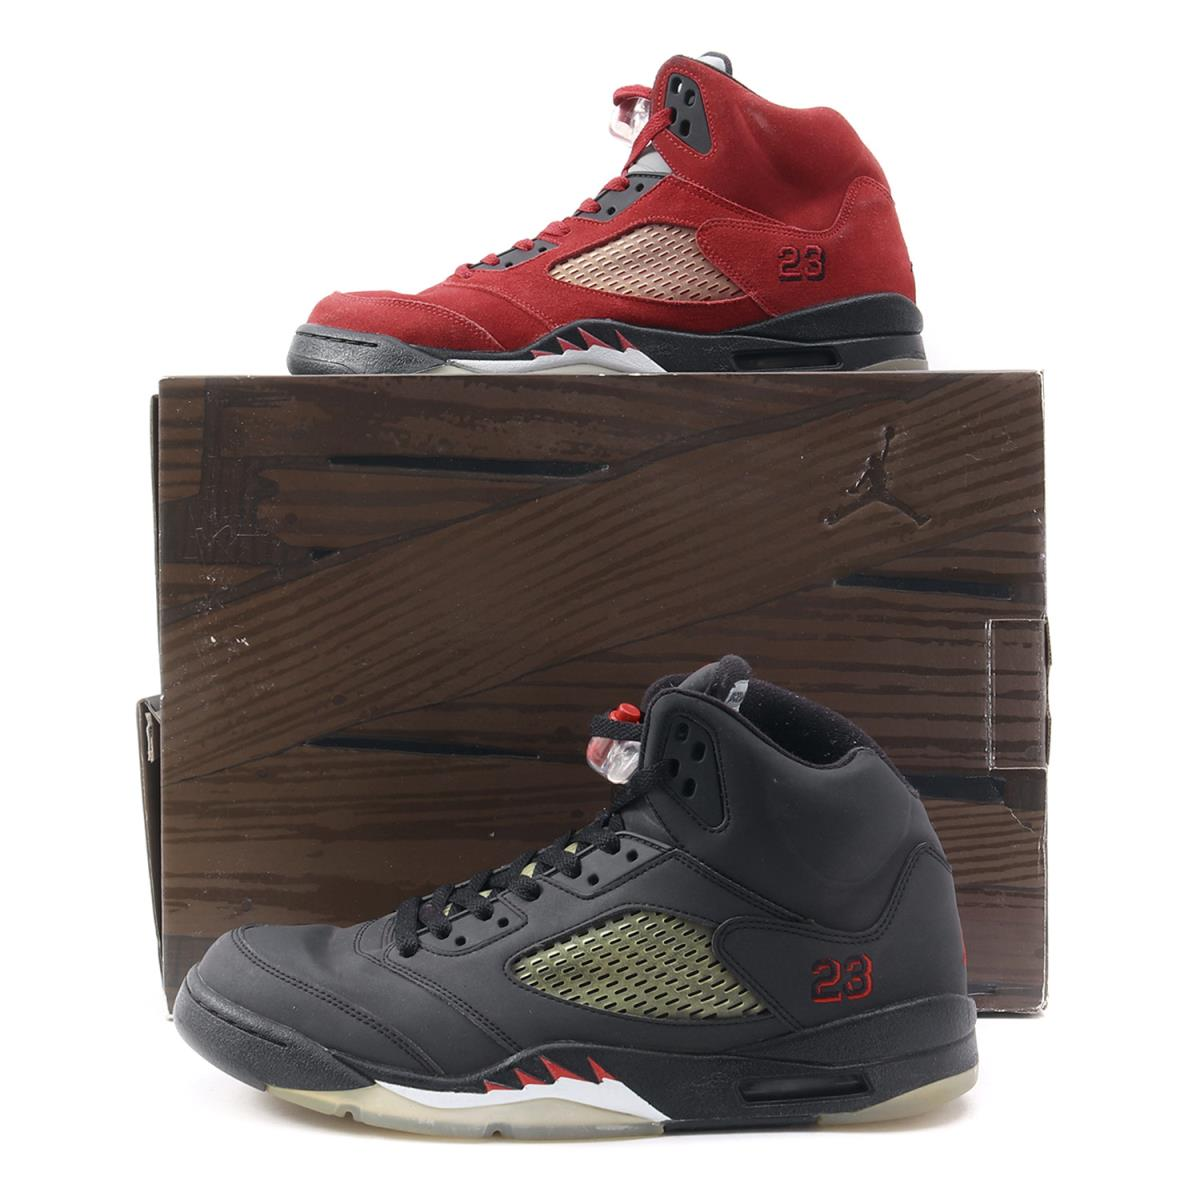 premium selection 1723b ea8b9 NIKE (Nike) AIR JORDAN 5 RETRO DMP RAGING BULL (360,968-991) red   black  US10.5(28.5cm)